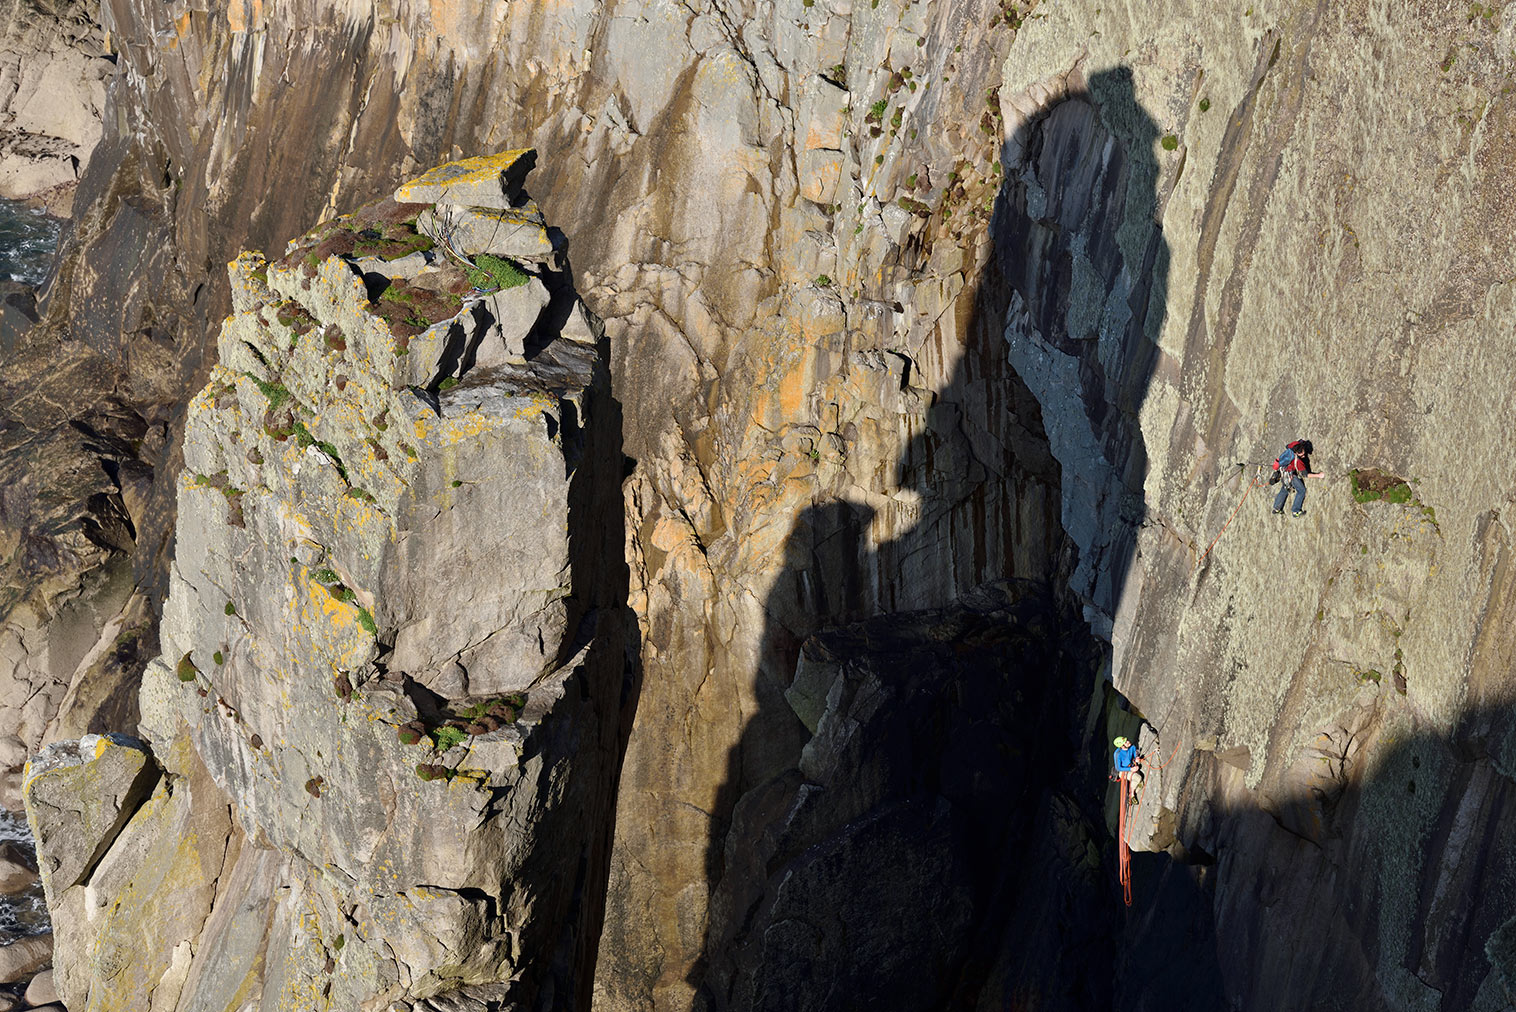 McHaffie and Bede West escaping from the shadow of the Devil's Chimney on Lundy's Promised Land (E3 6a). © Ray Wood